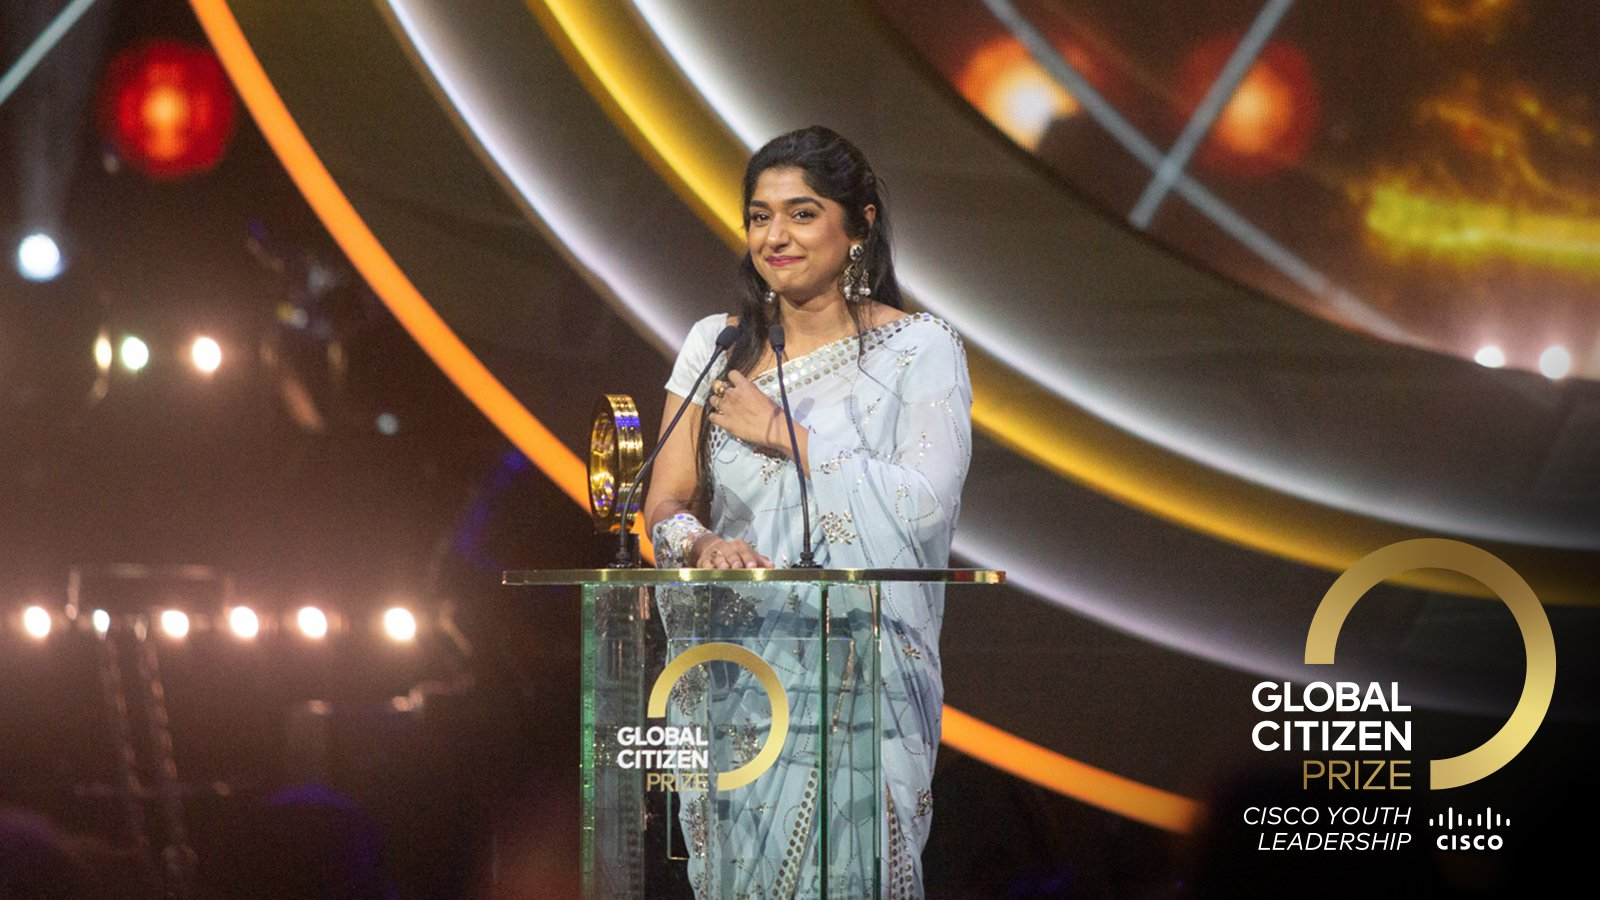 Global Citizen Cisco Youth Leadership Award Winner 2019 - Priya Prakash